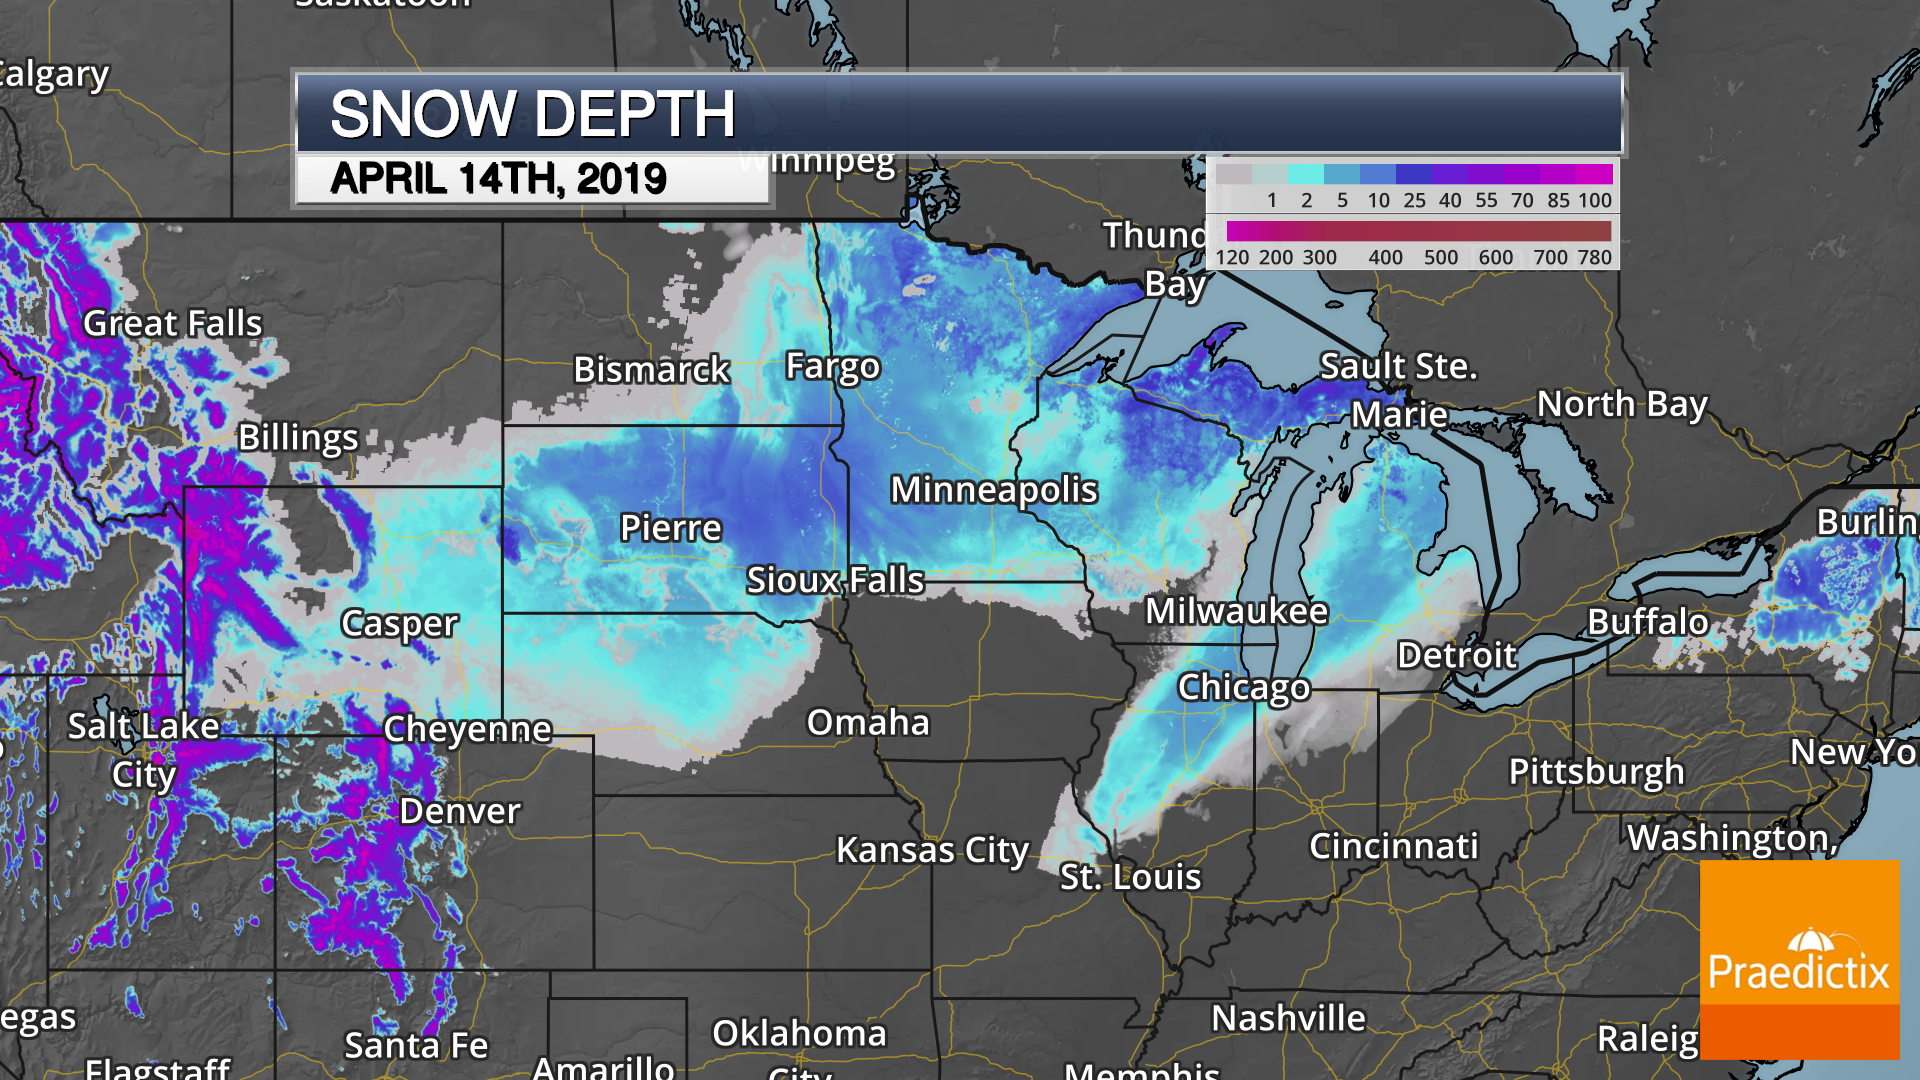 snow depth of midwest on april 14, 2019 after the april 2019 blizzard on a dark map